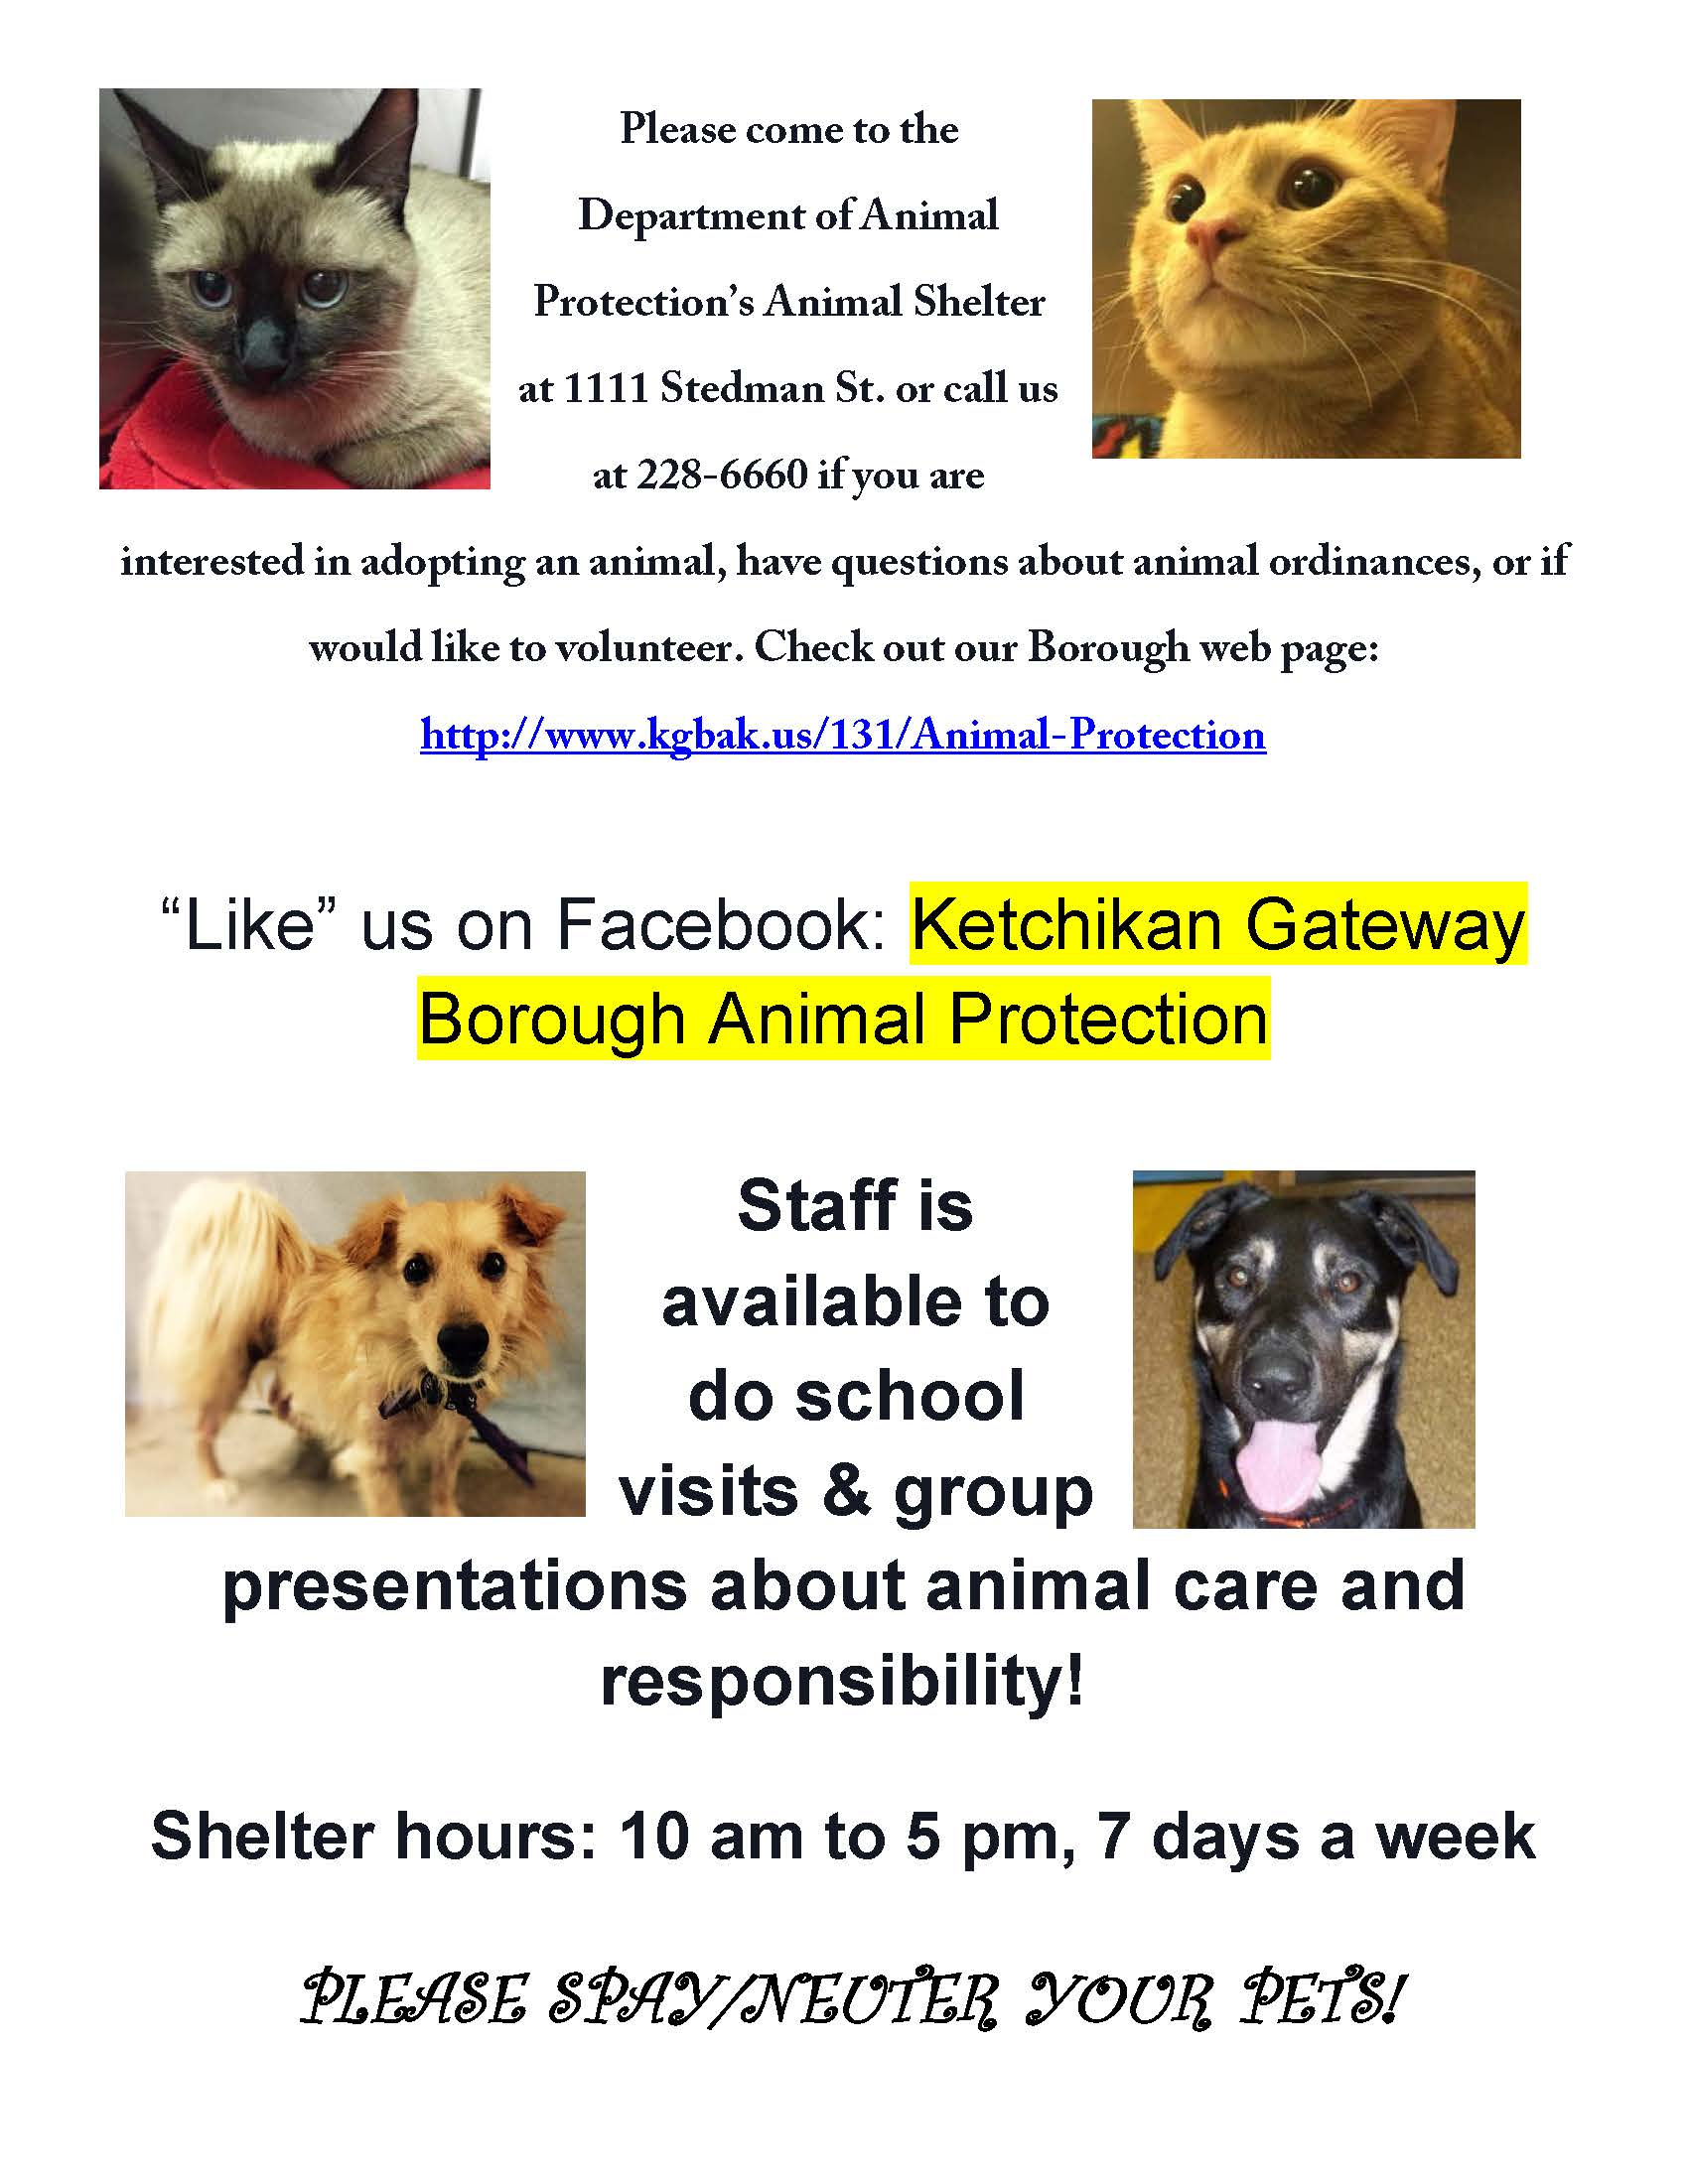 visit animal protection flier